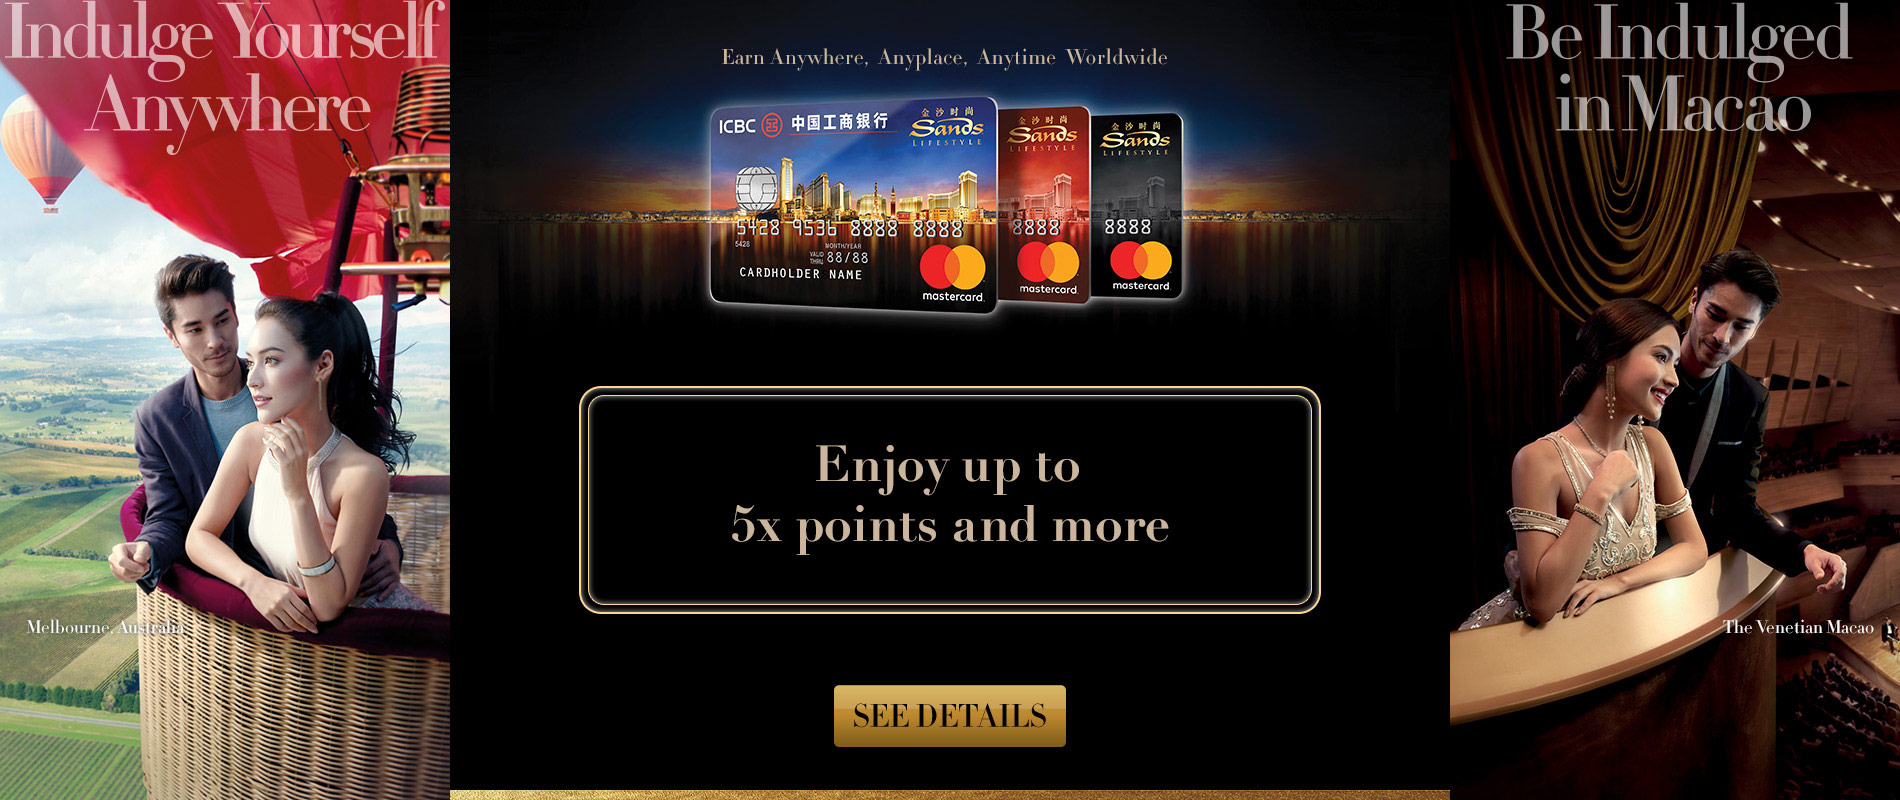 Sands Lifestyle Earn up to 5 times points within Sands Resorts Macao